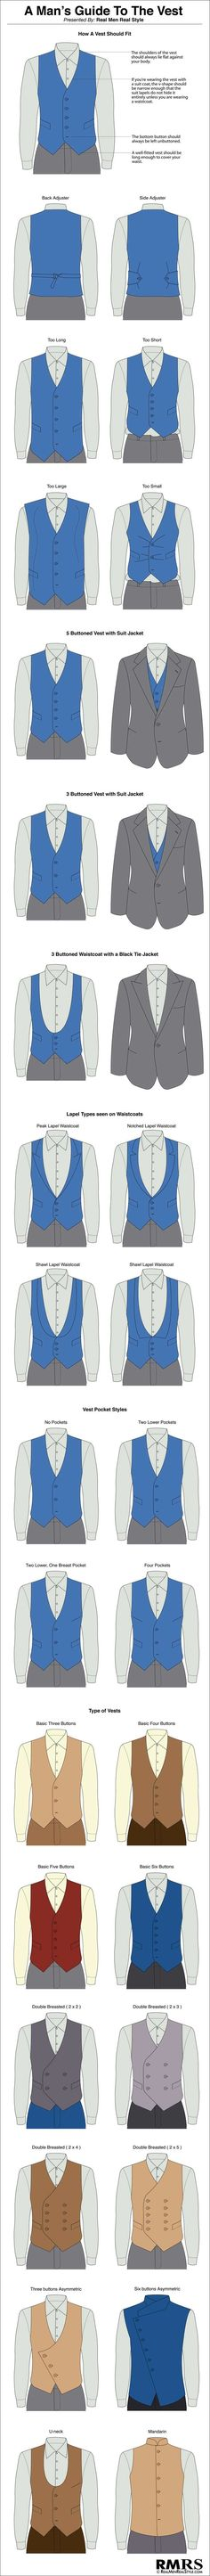 A Mans Guide To The Vest #men #guide #vest #fashion #menswear #mensfashion